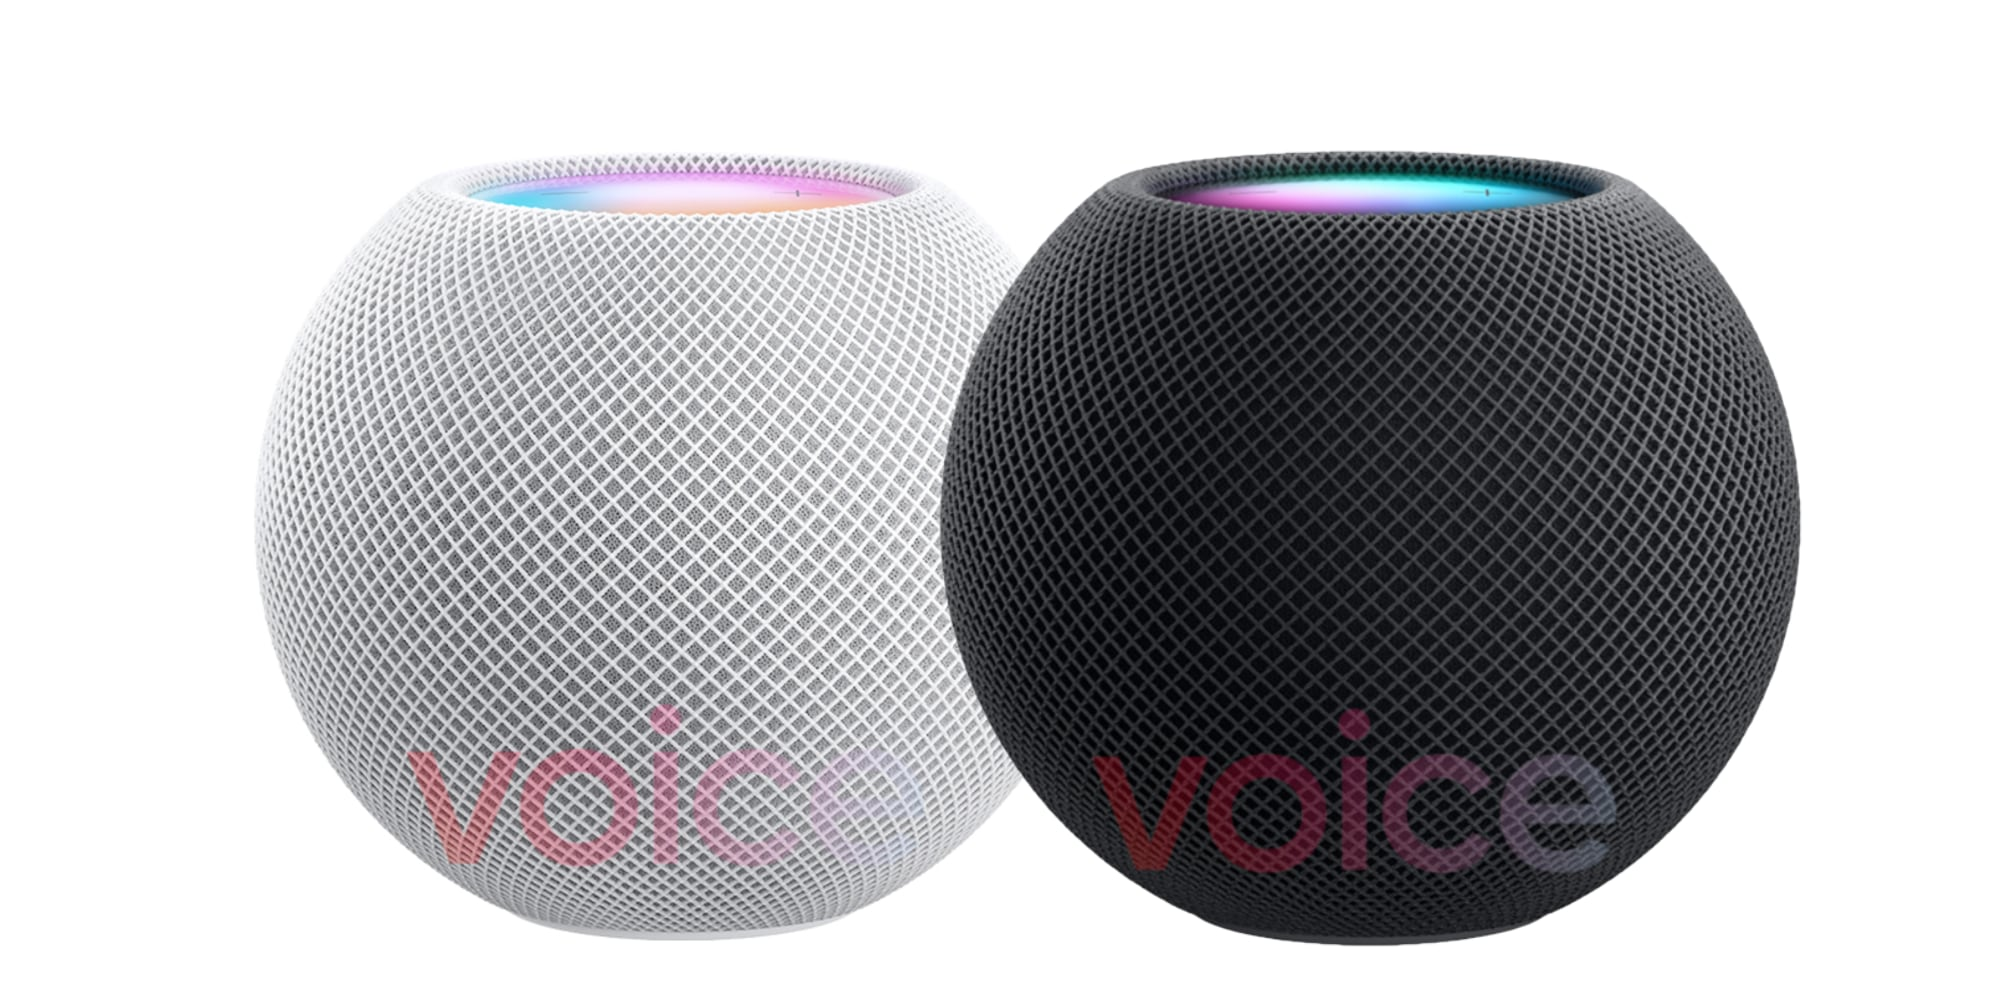 HomePod mini confirmed for iPhone 12 event today smaller design with spherical shape – 9to5Mac